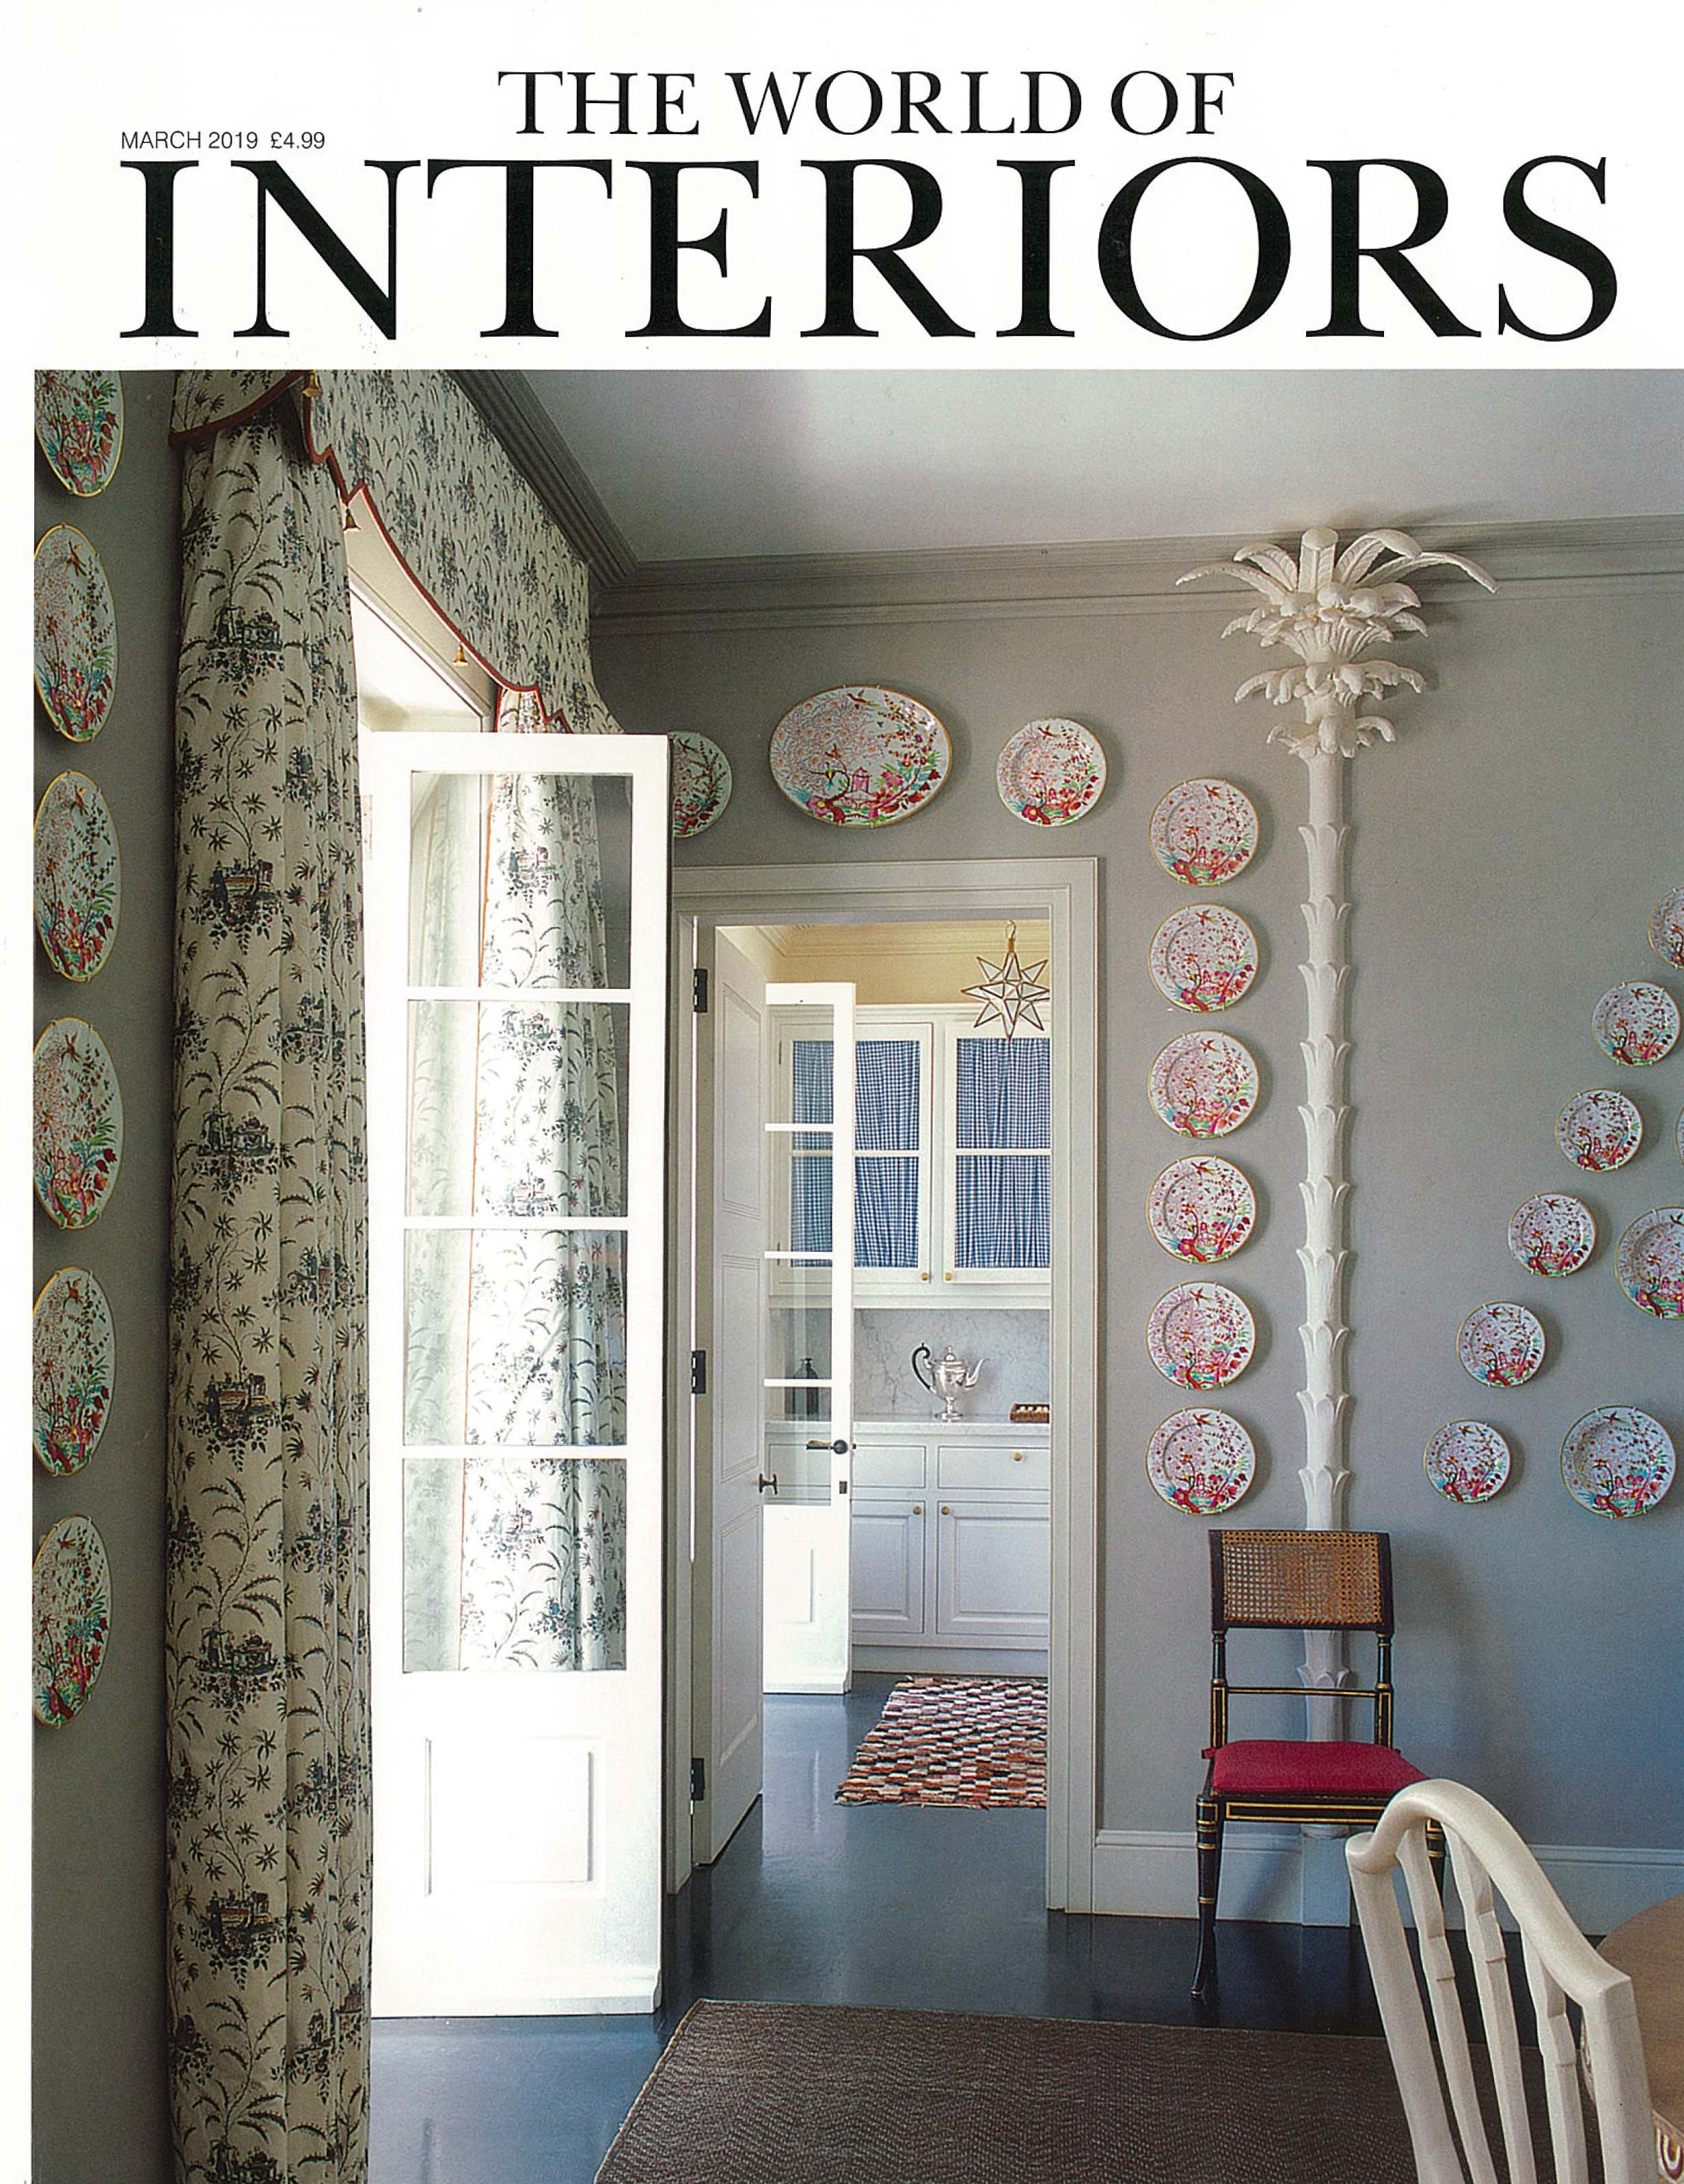 In the press -  The World of Interiors March 2019